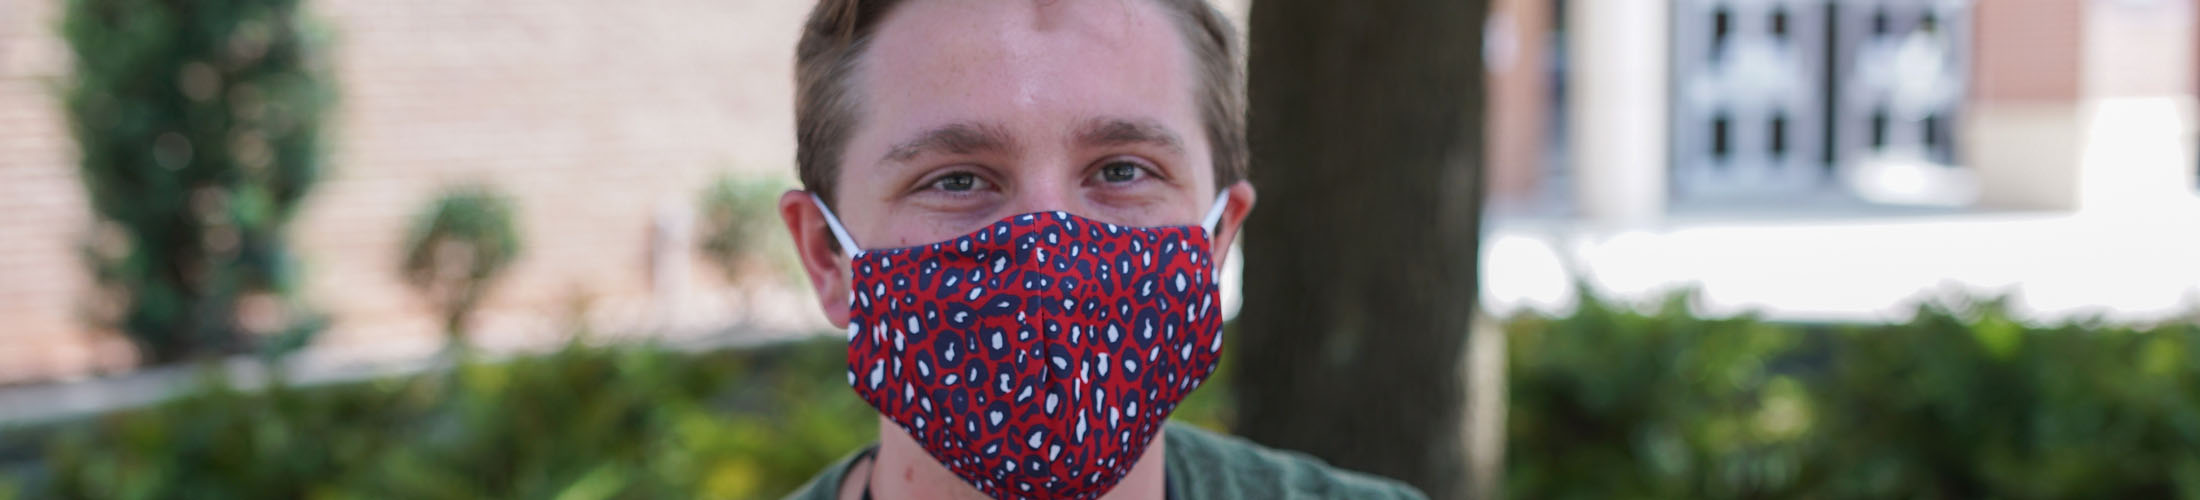 Male student with jag print mask on.